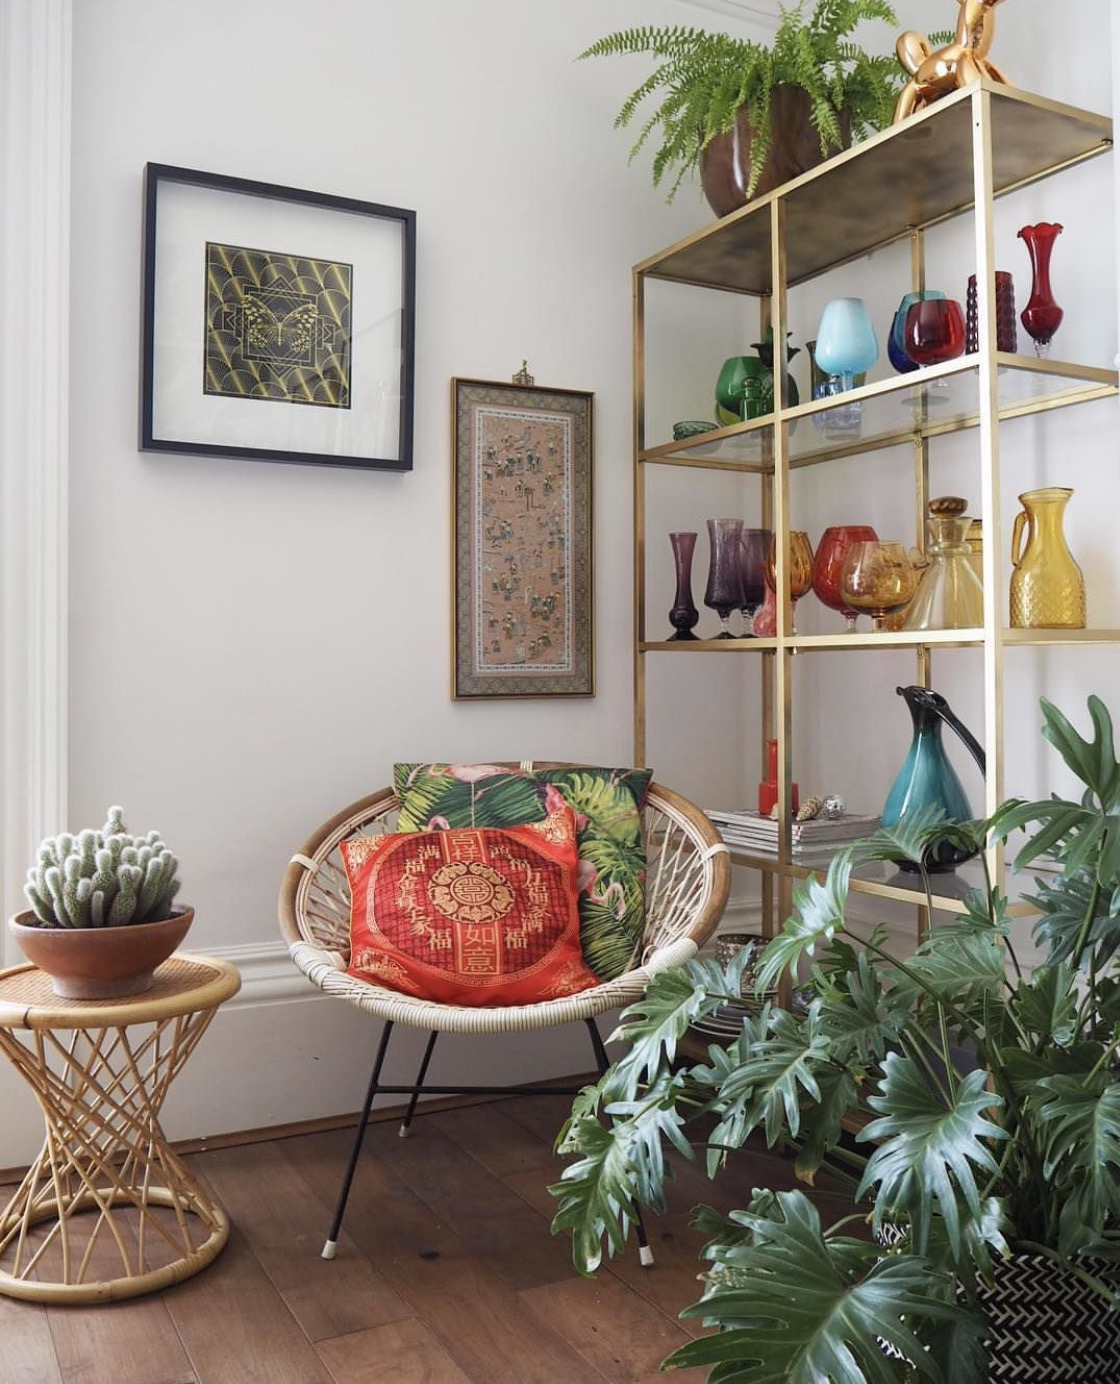 I do like a bit of vintage bamboo. And charity shop glass. And a cactus.